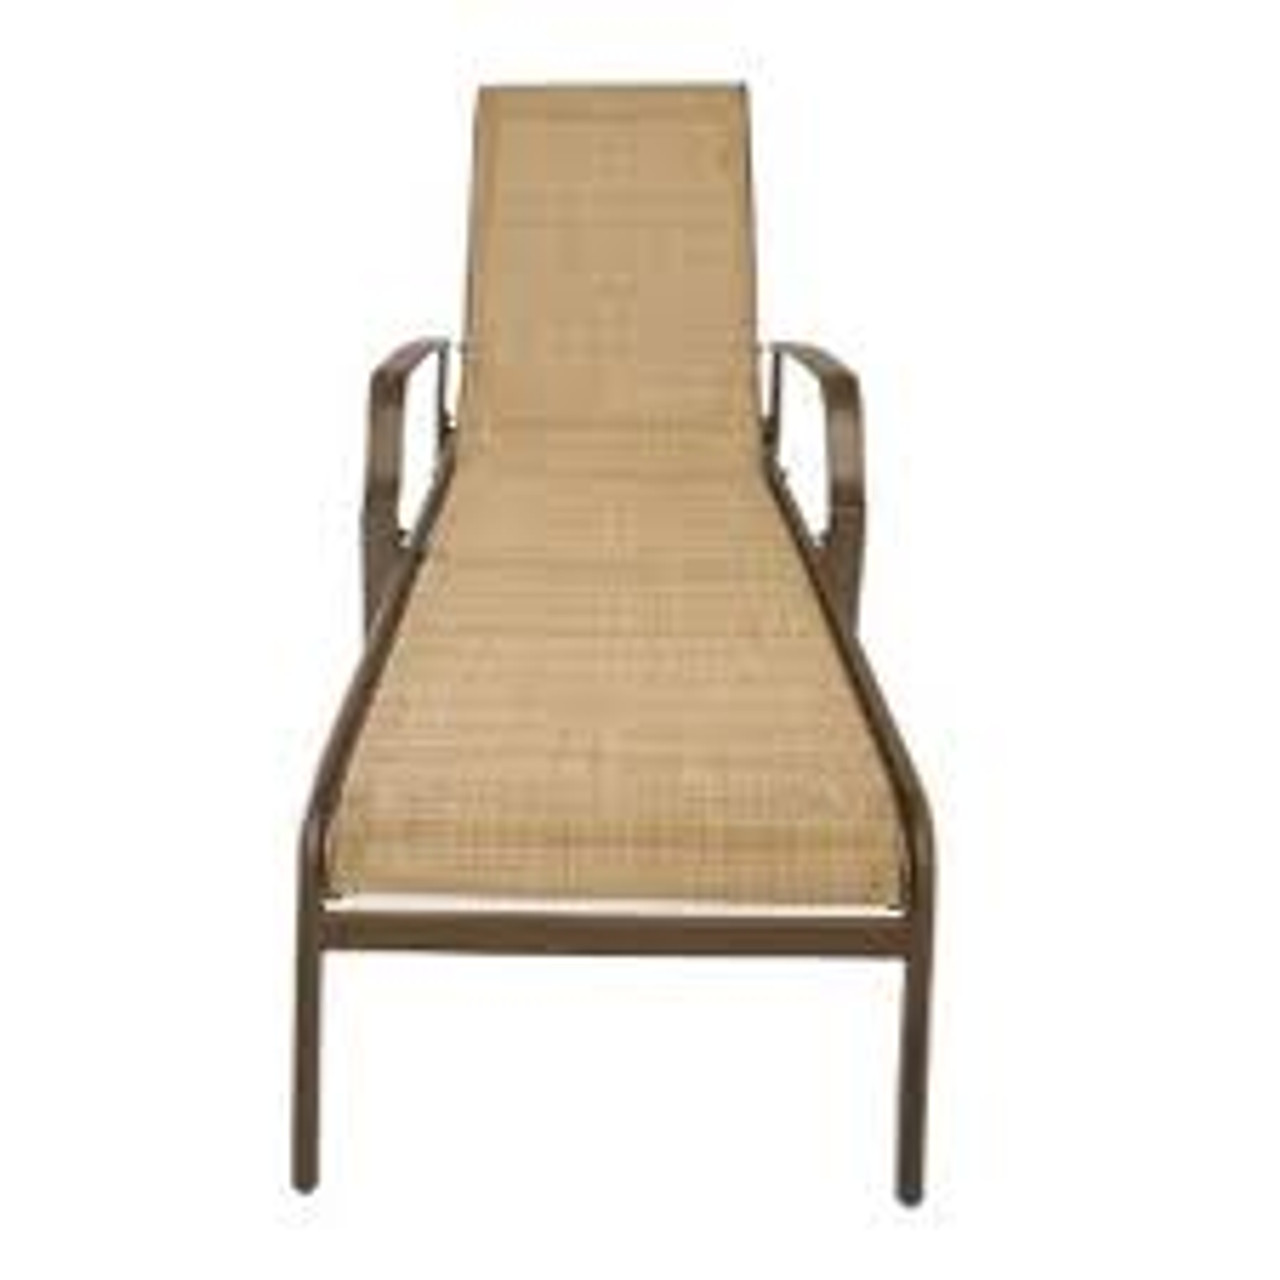 One Piece Chaise Sling